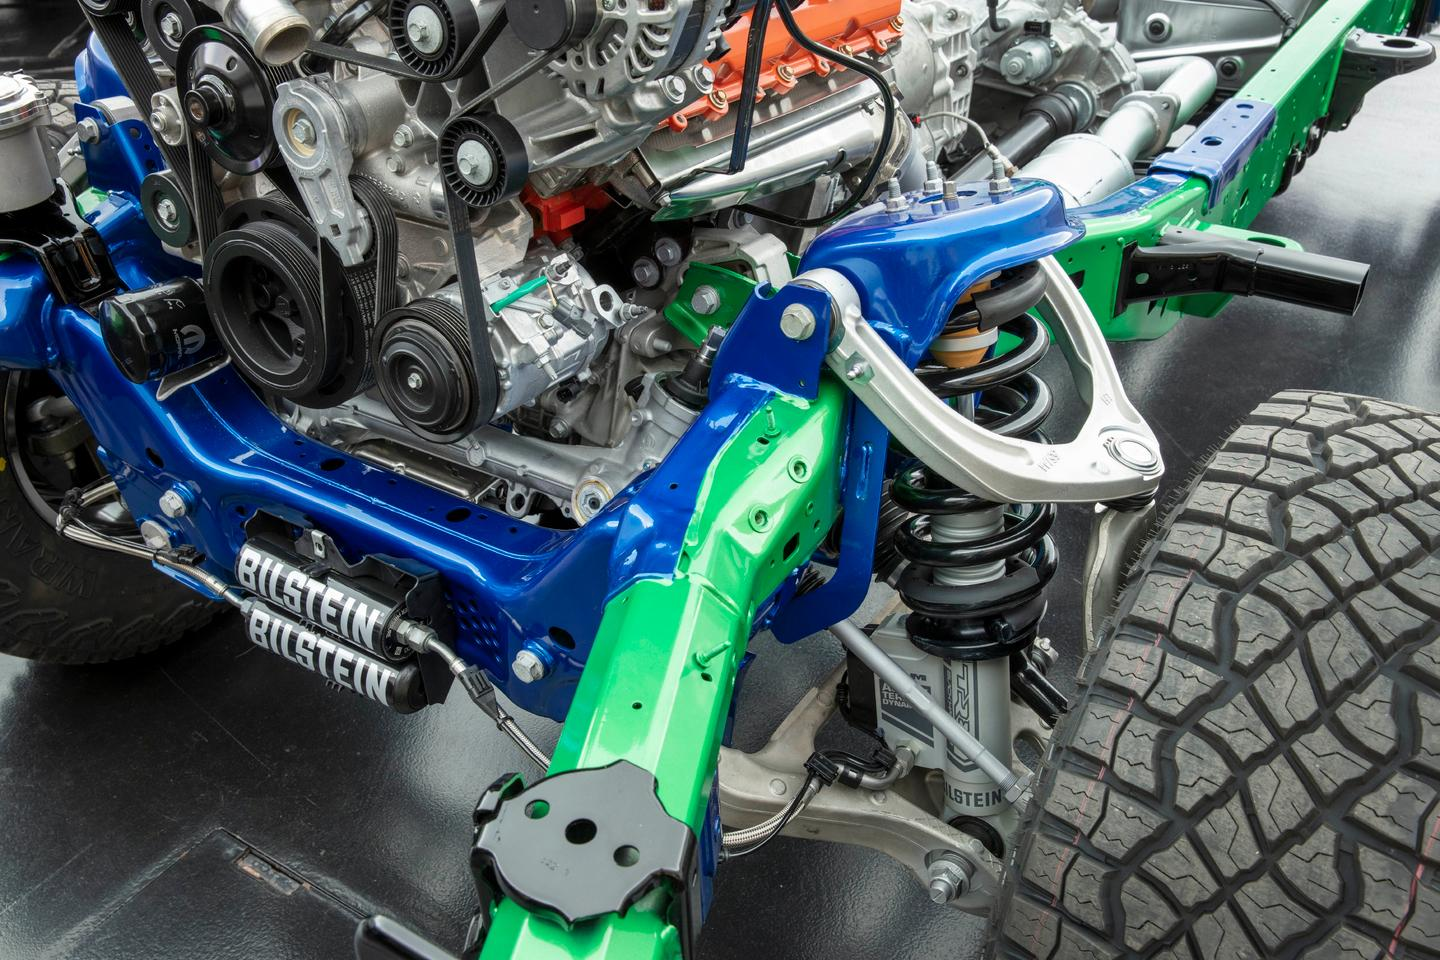 Ram has reworked the suspension front and rear and added in active damping